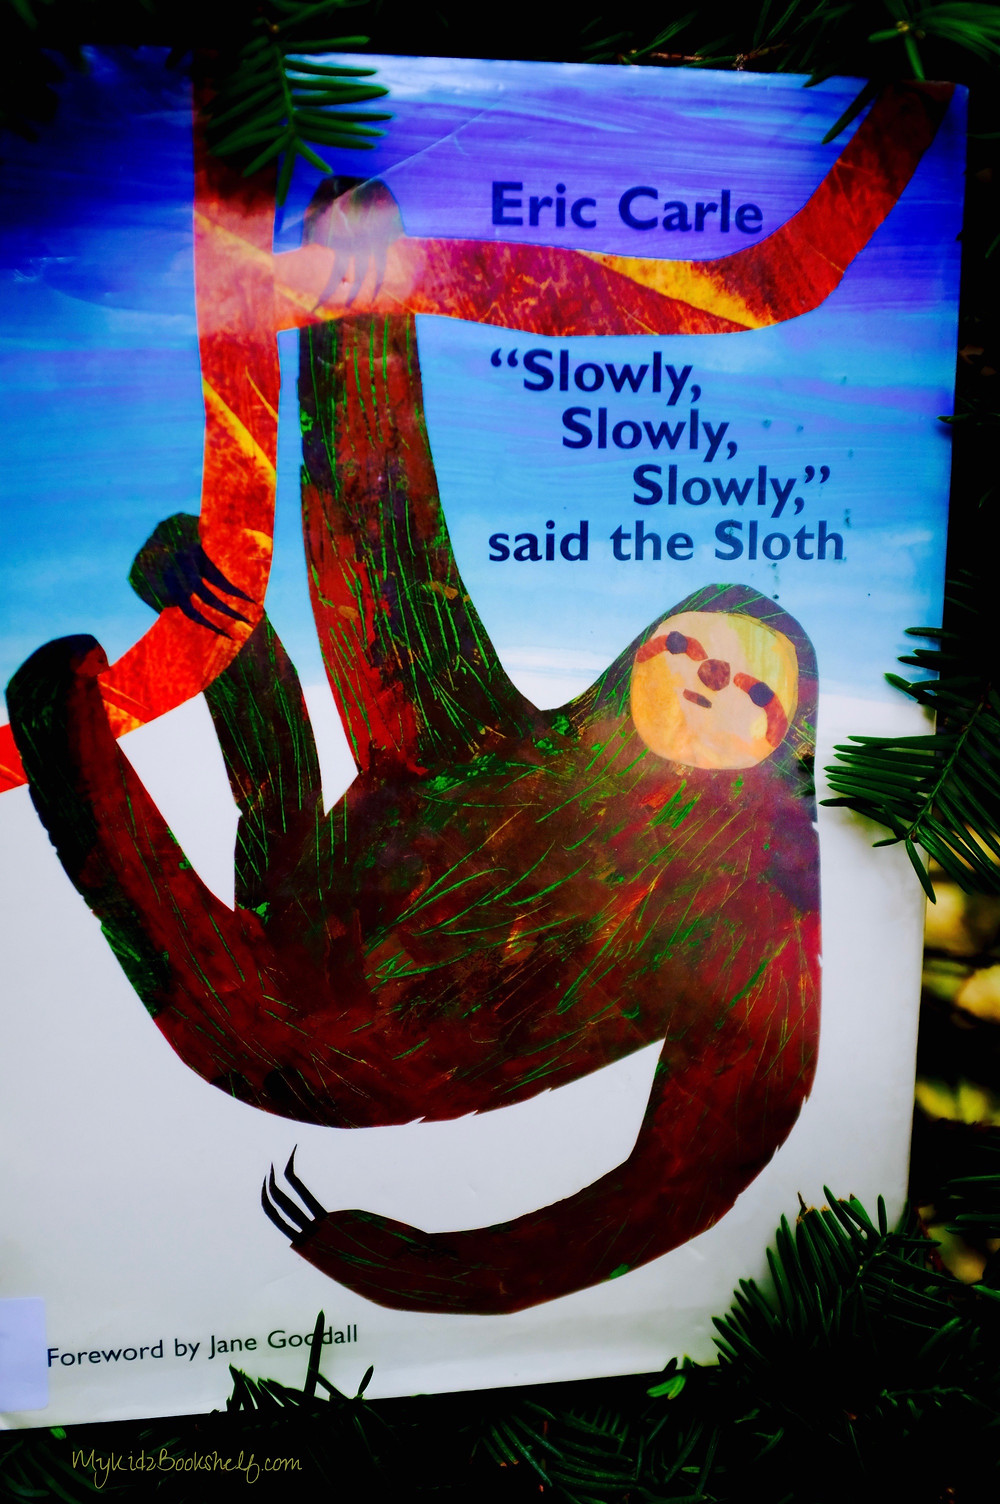 Cover-art-for-the-picture-book-slowly-slowly-slowly-said-the-sloth-by-Eric-Carle